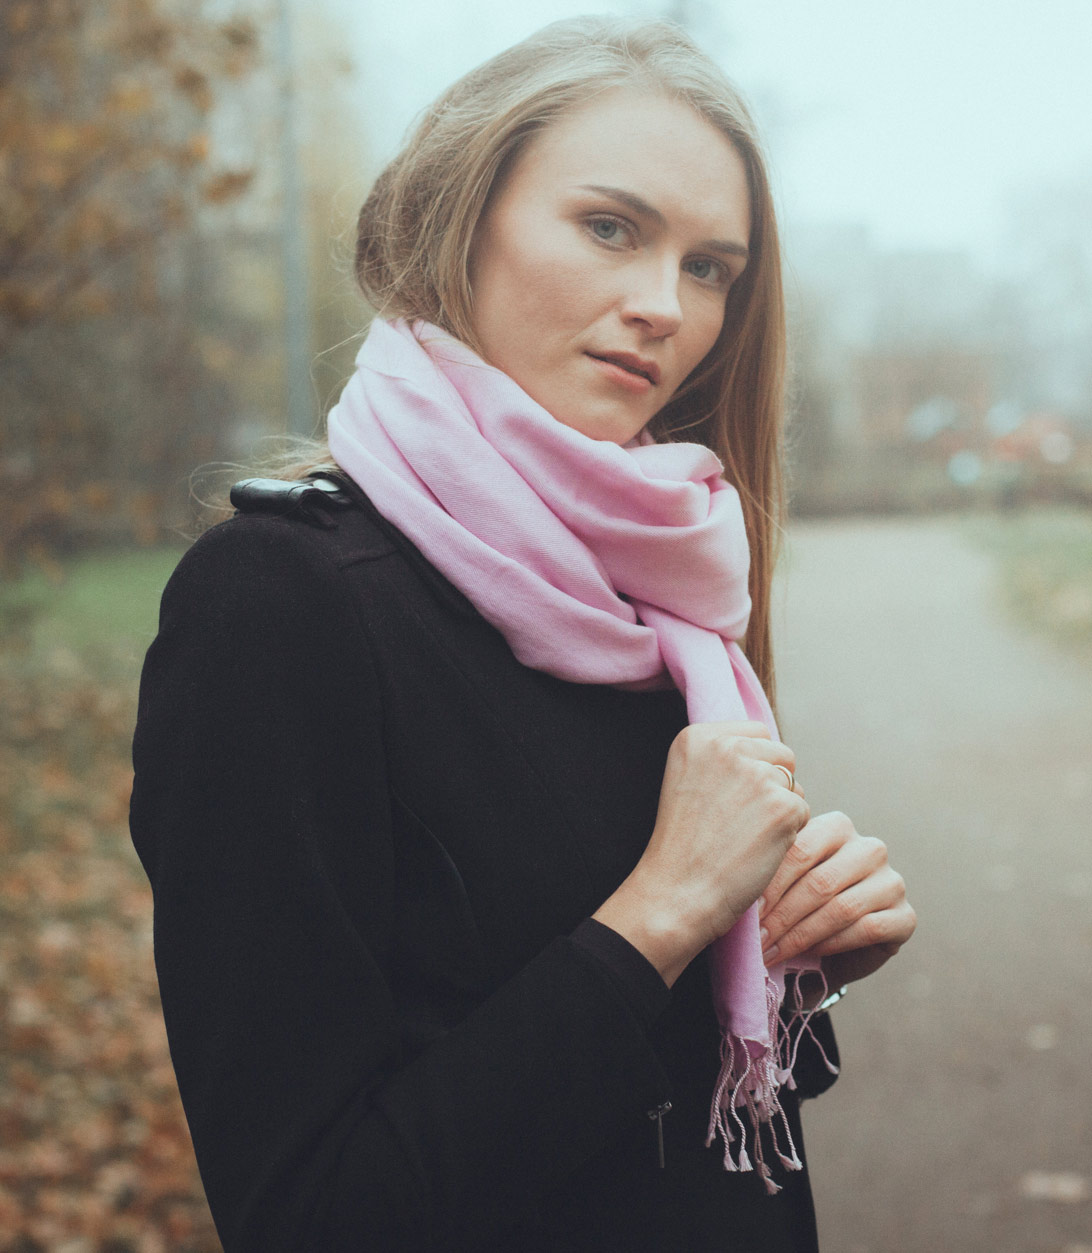 Pashmina Large Scarf - 45x200cm - 70% Cashmere/30% Silk - Dry Rose